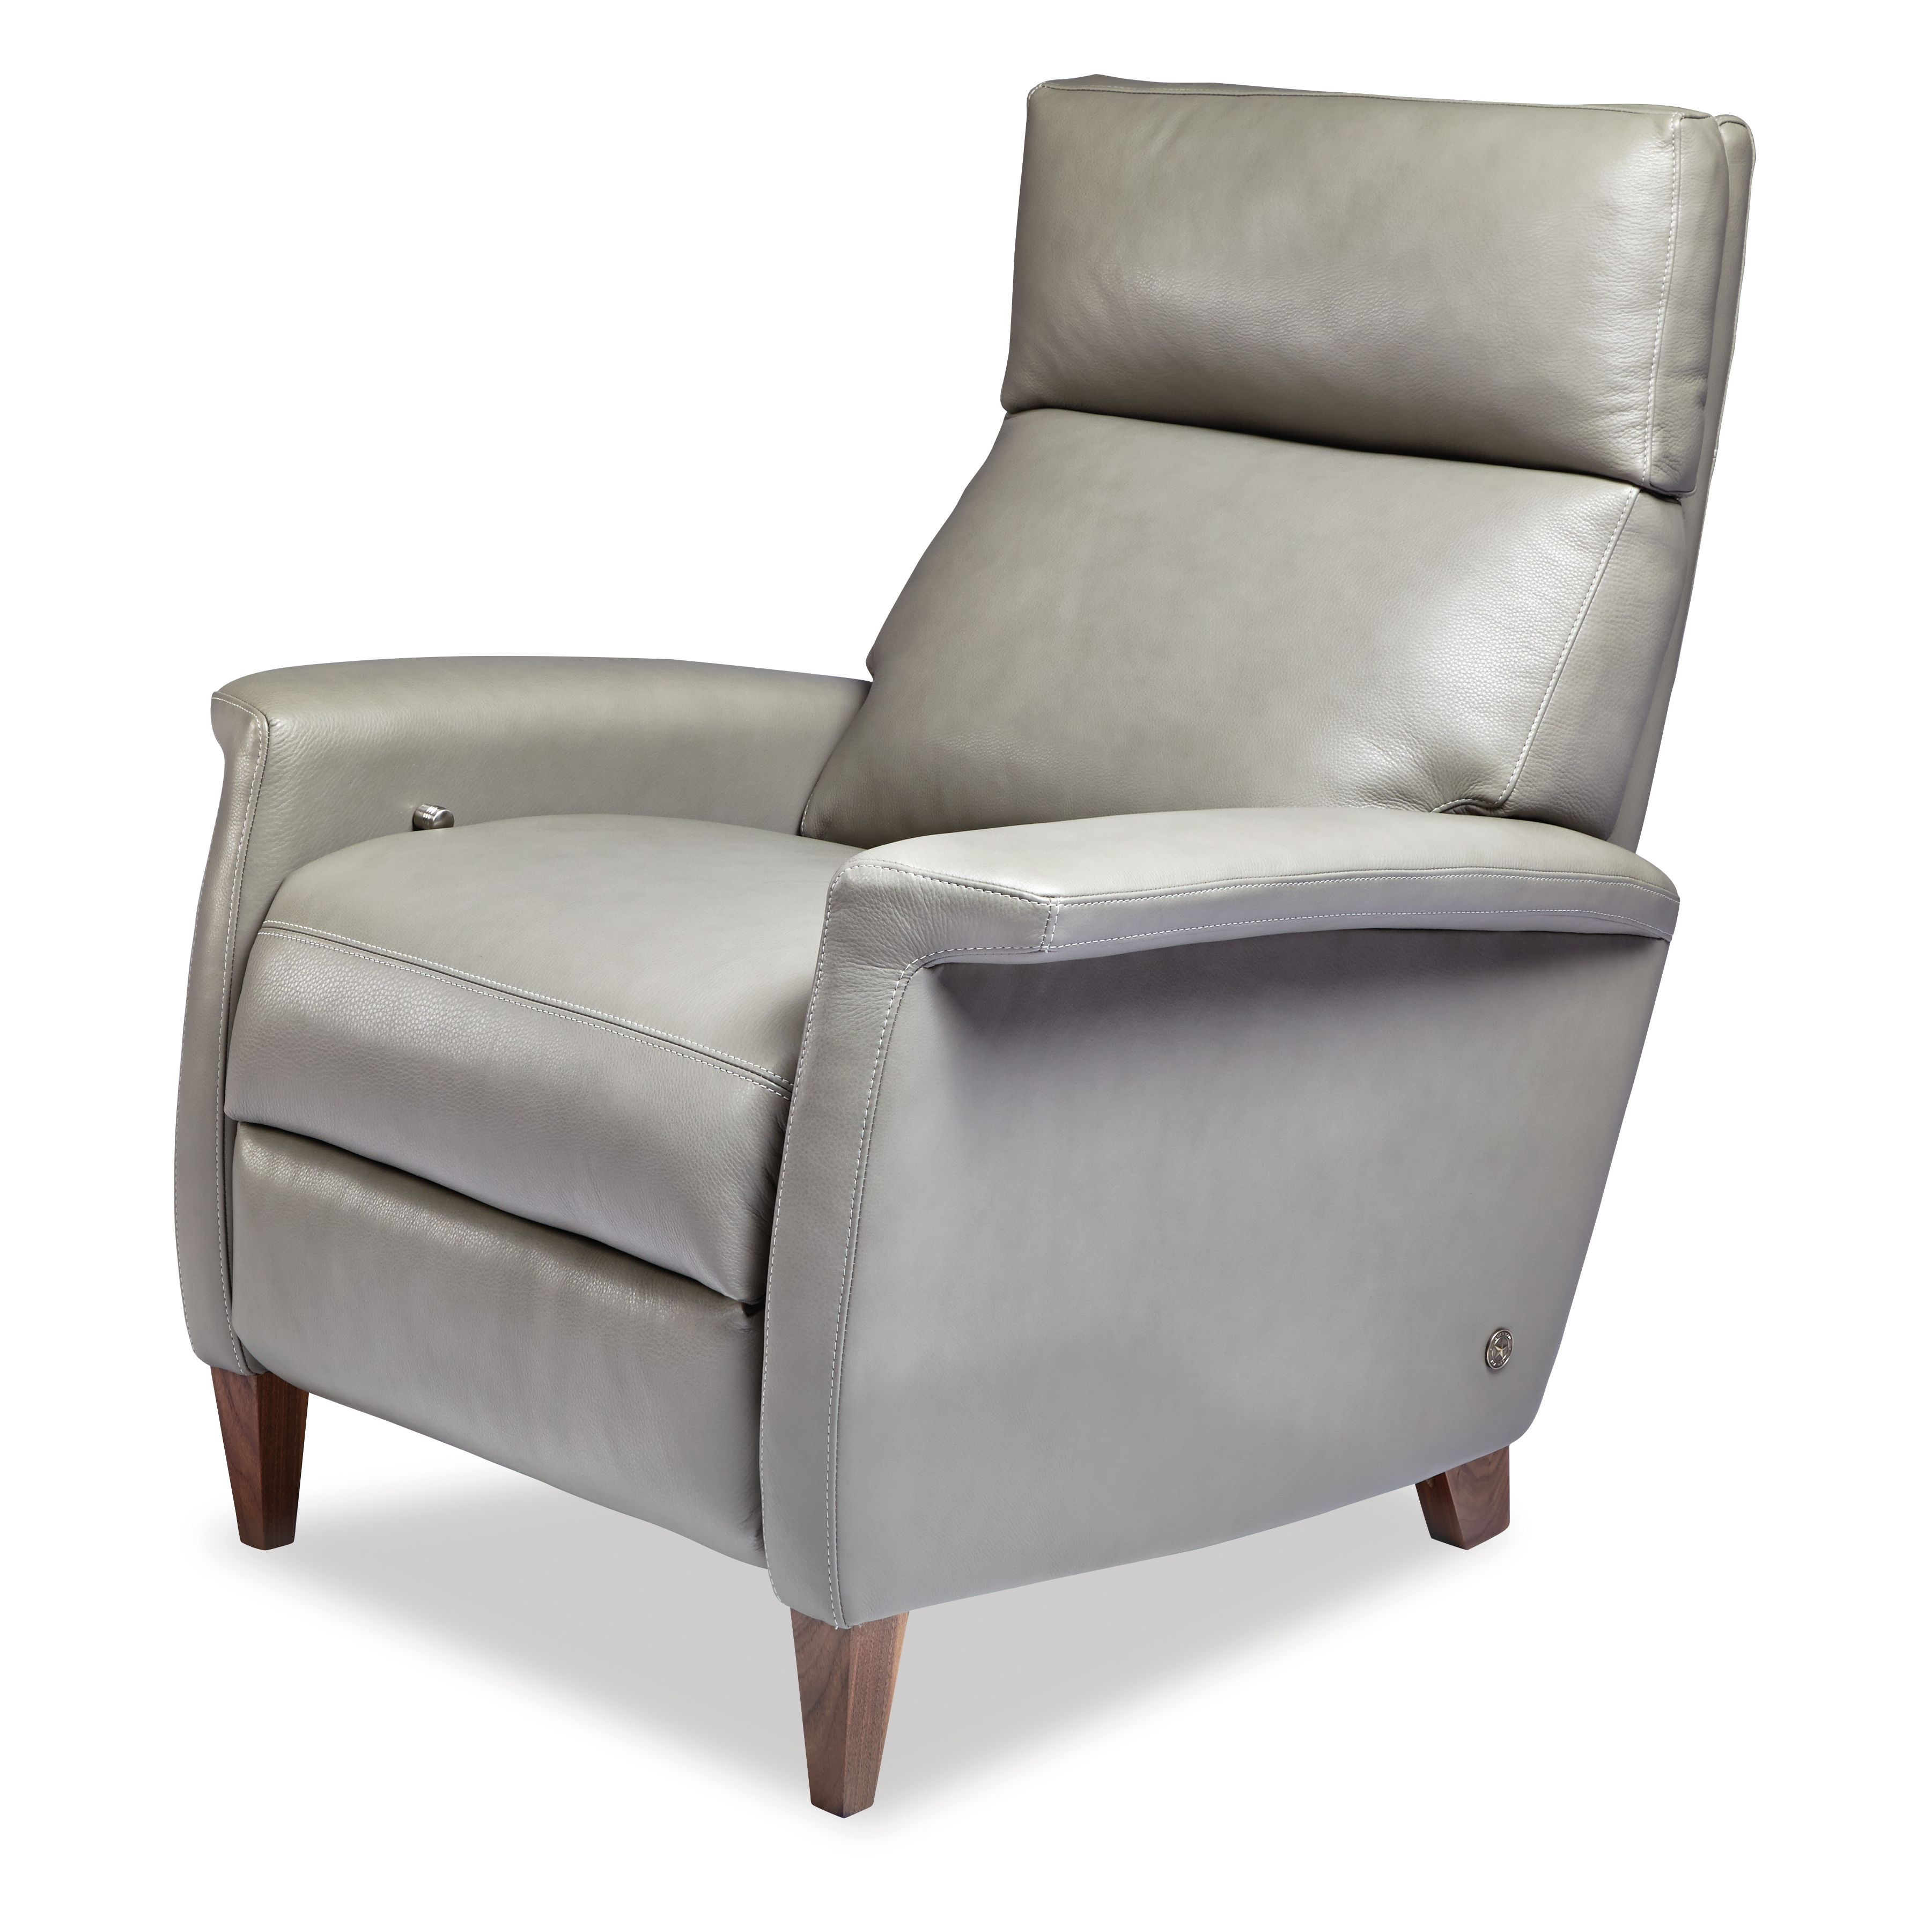 Comfort Recliner American Leather Products Recliner Leather